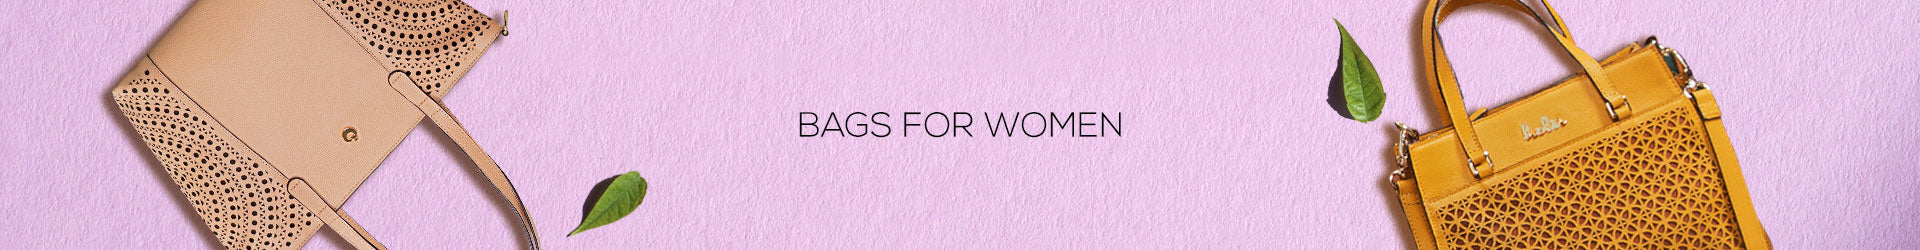 BAGS SALE FOR WOMEN